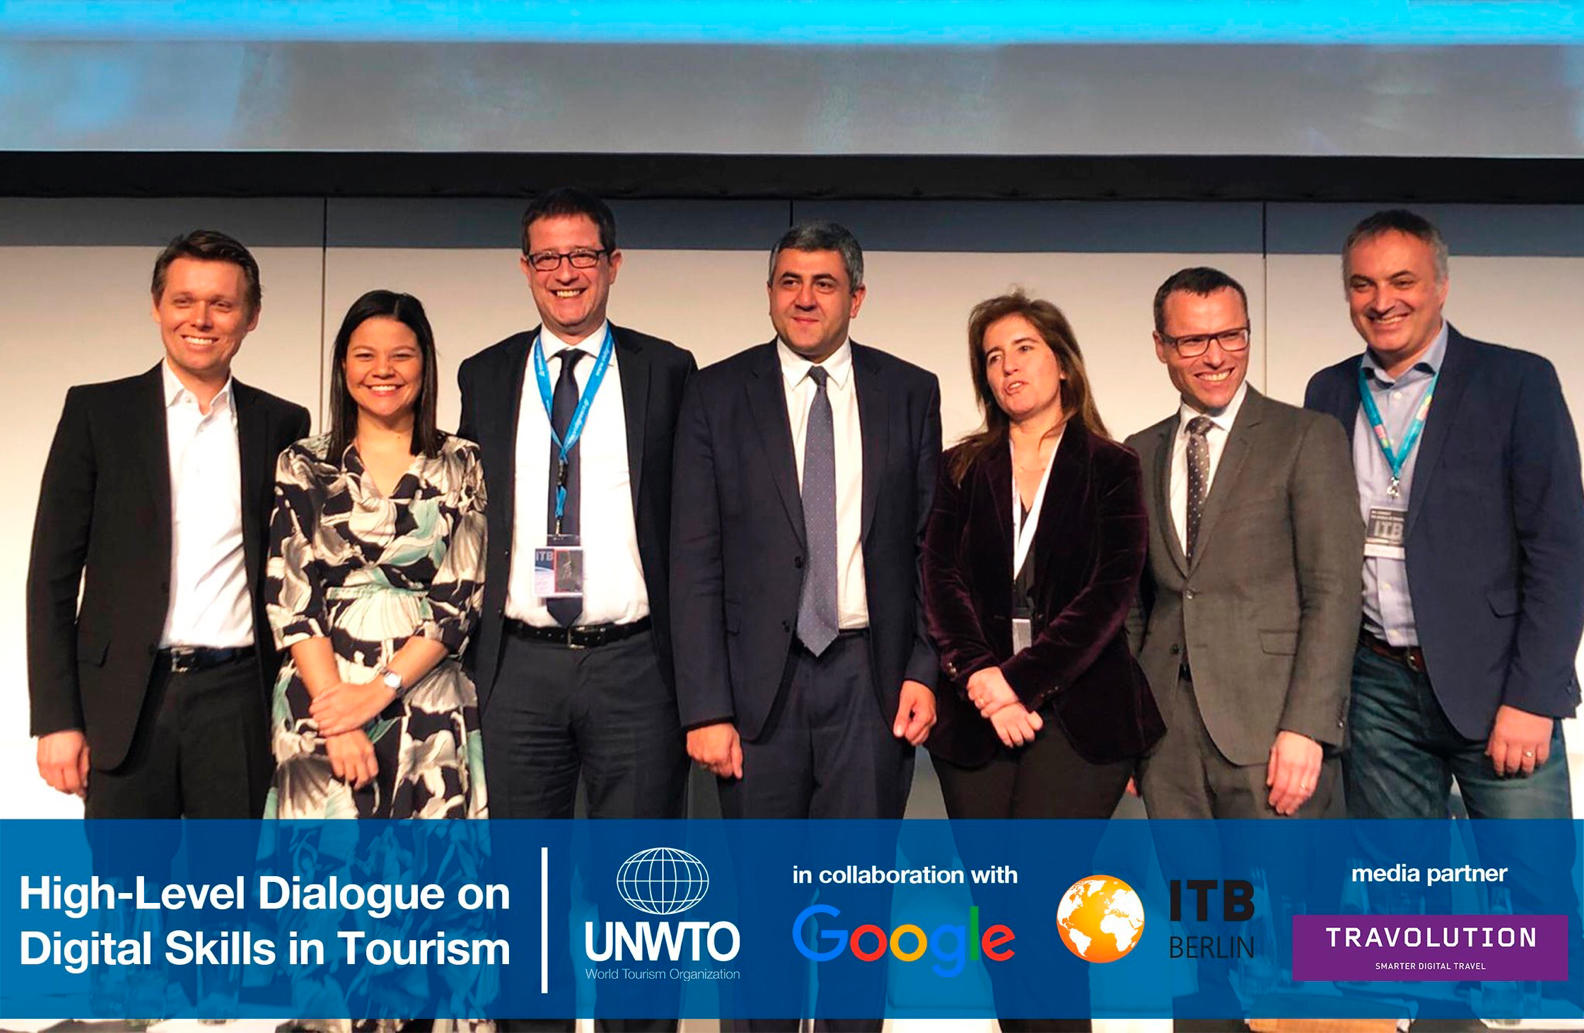 ITB 2019: Google and UNWTO to collaborate on developing digital skills in tourism